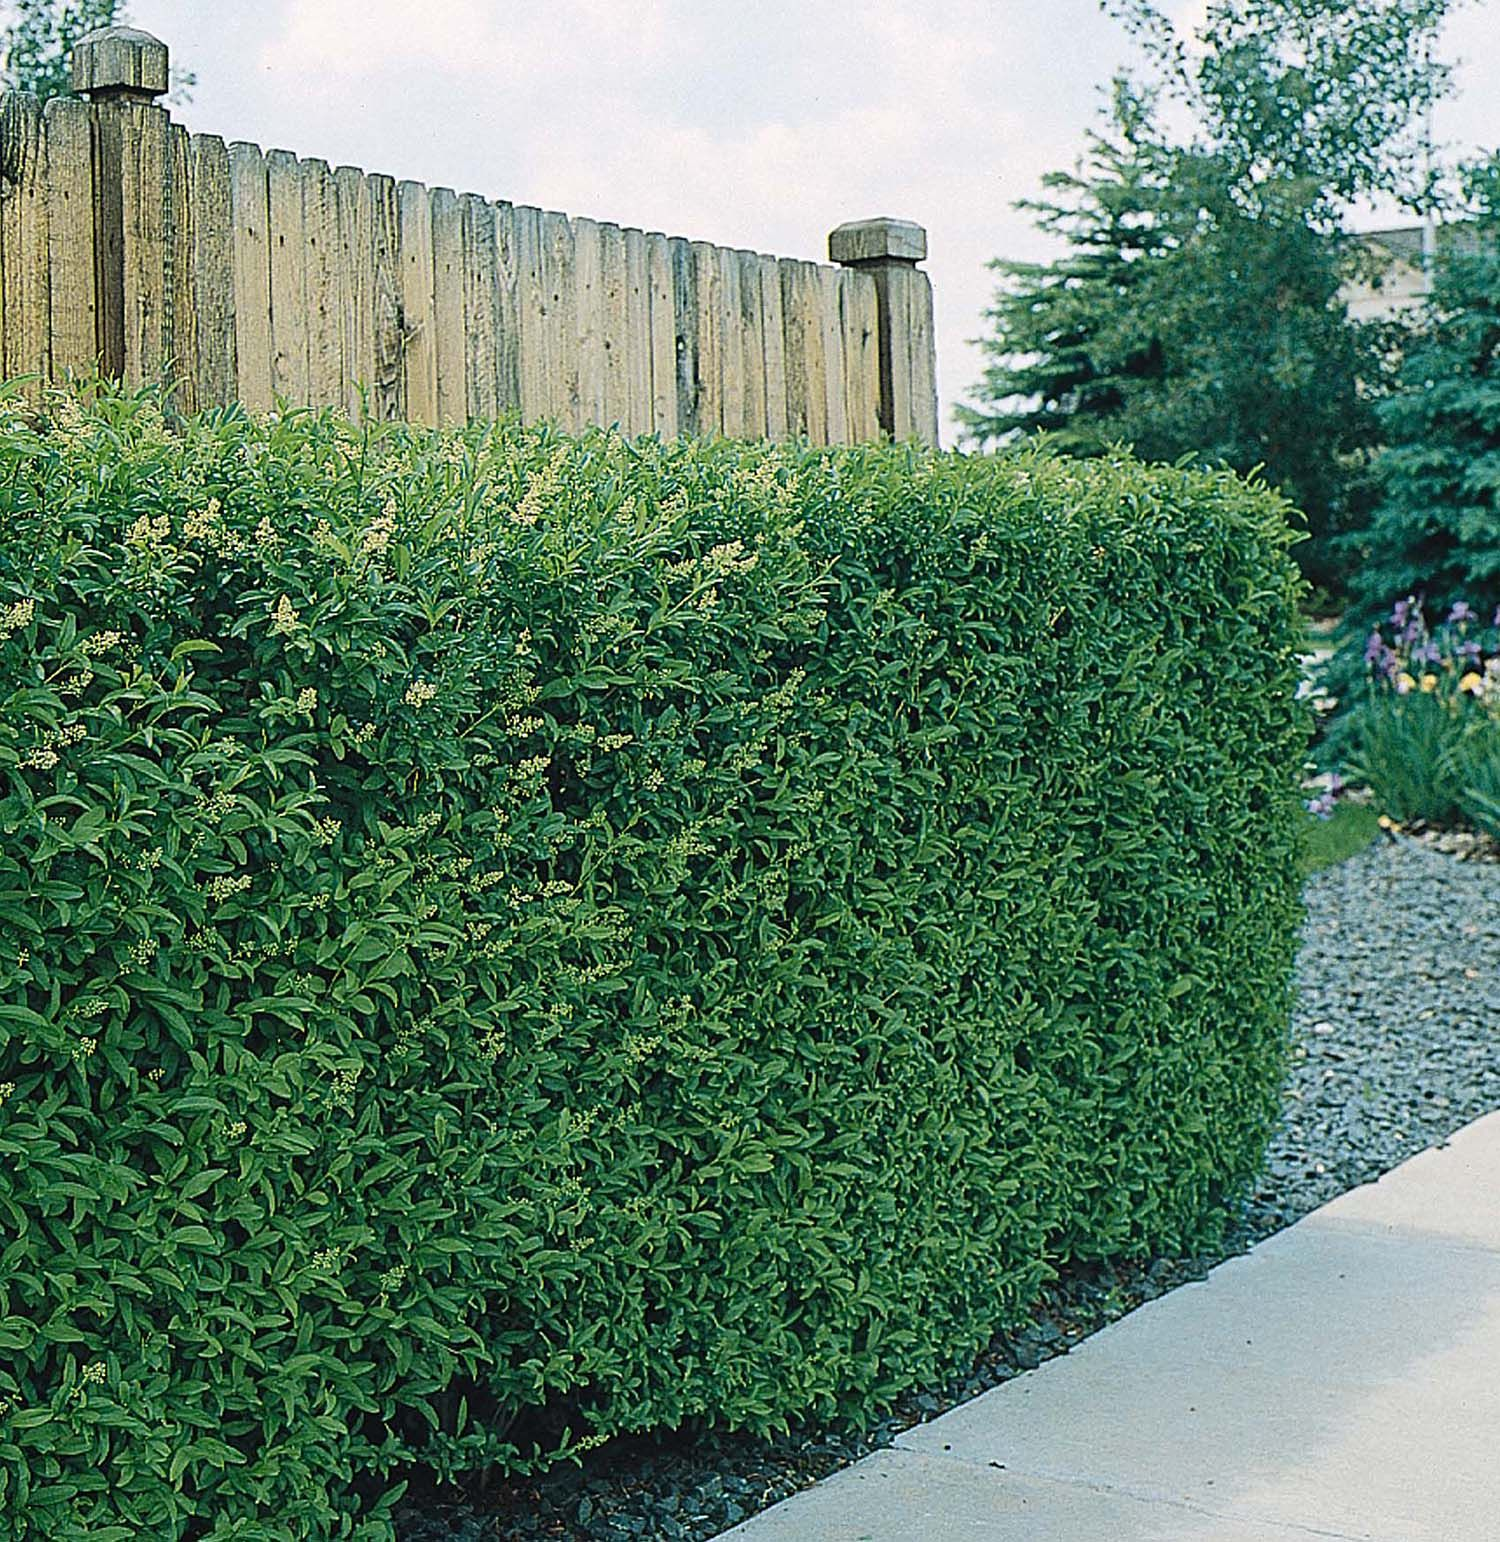 Best shrubs for full sun and privacy - Monrovia S Lodense Privet Details And Information Learn More About Monrovia Plants And Best Practices For Best Possible Plant Performance